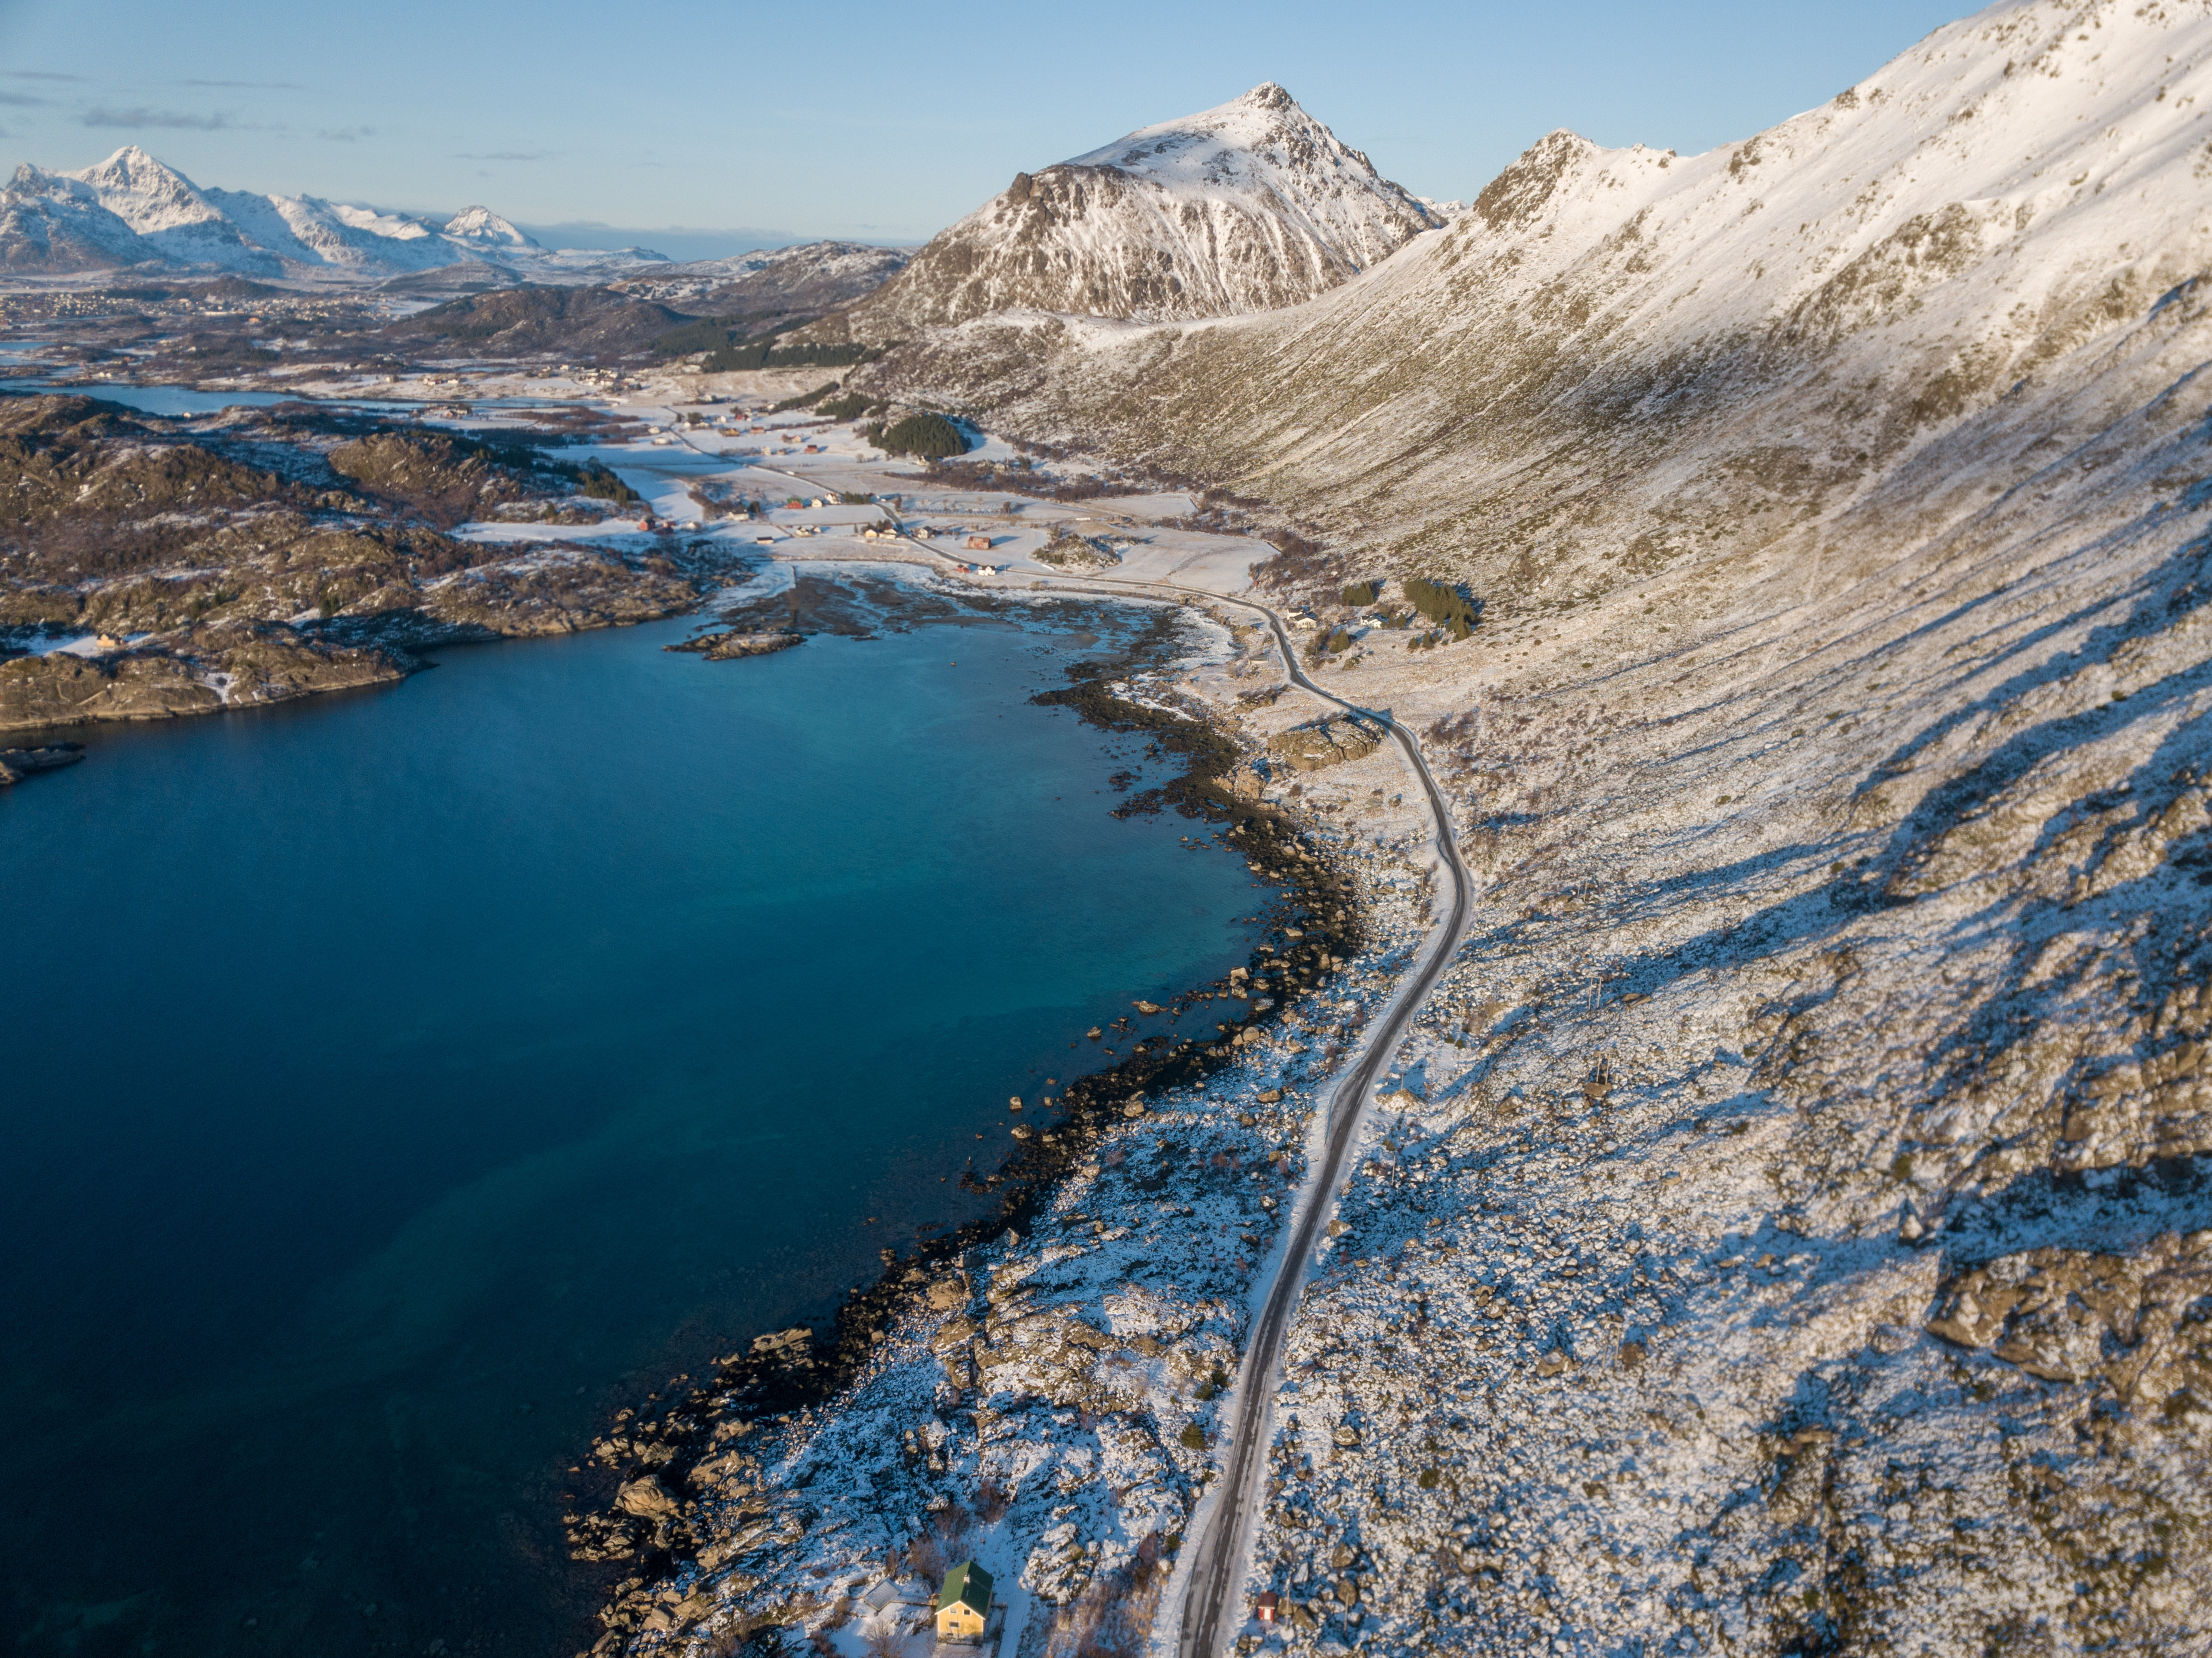 birds-eye view of snow-covered mountain and body of water